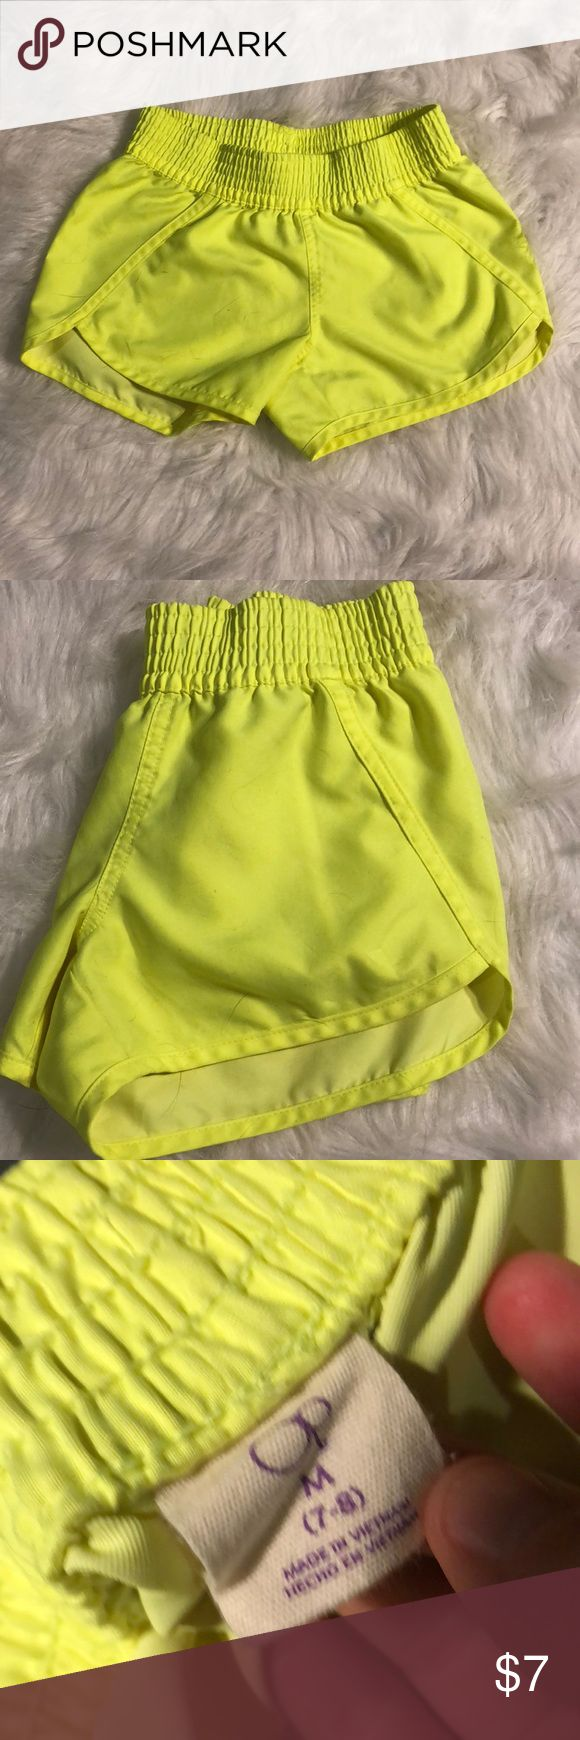 Girls neon yellow shorts Worn once or twice. Perfect condition. Bottoms Shorts